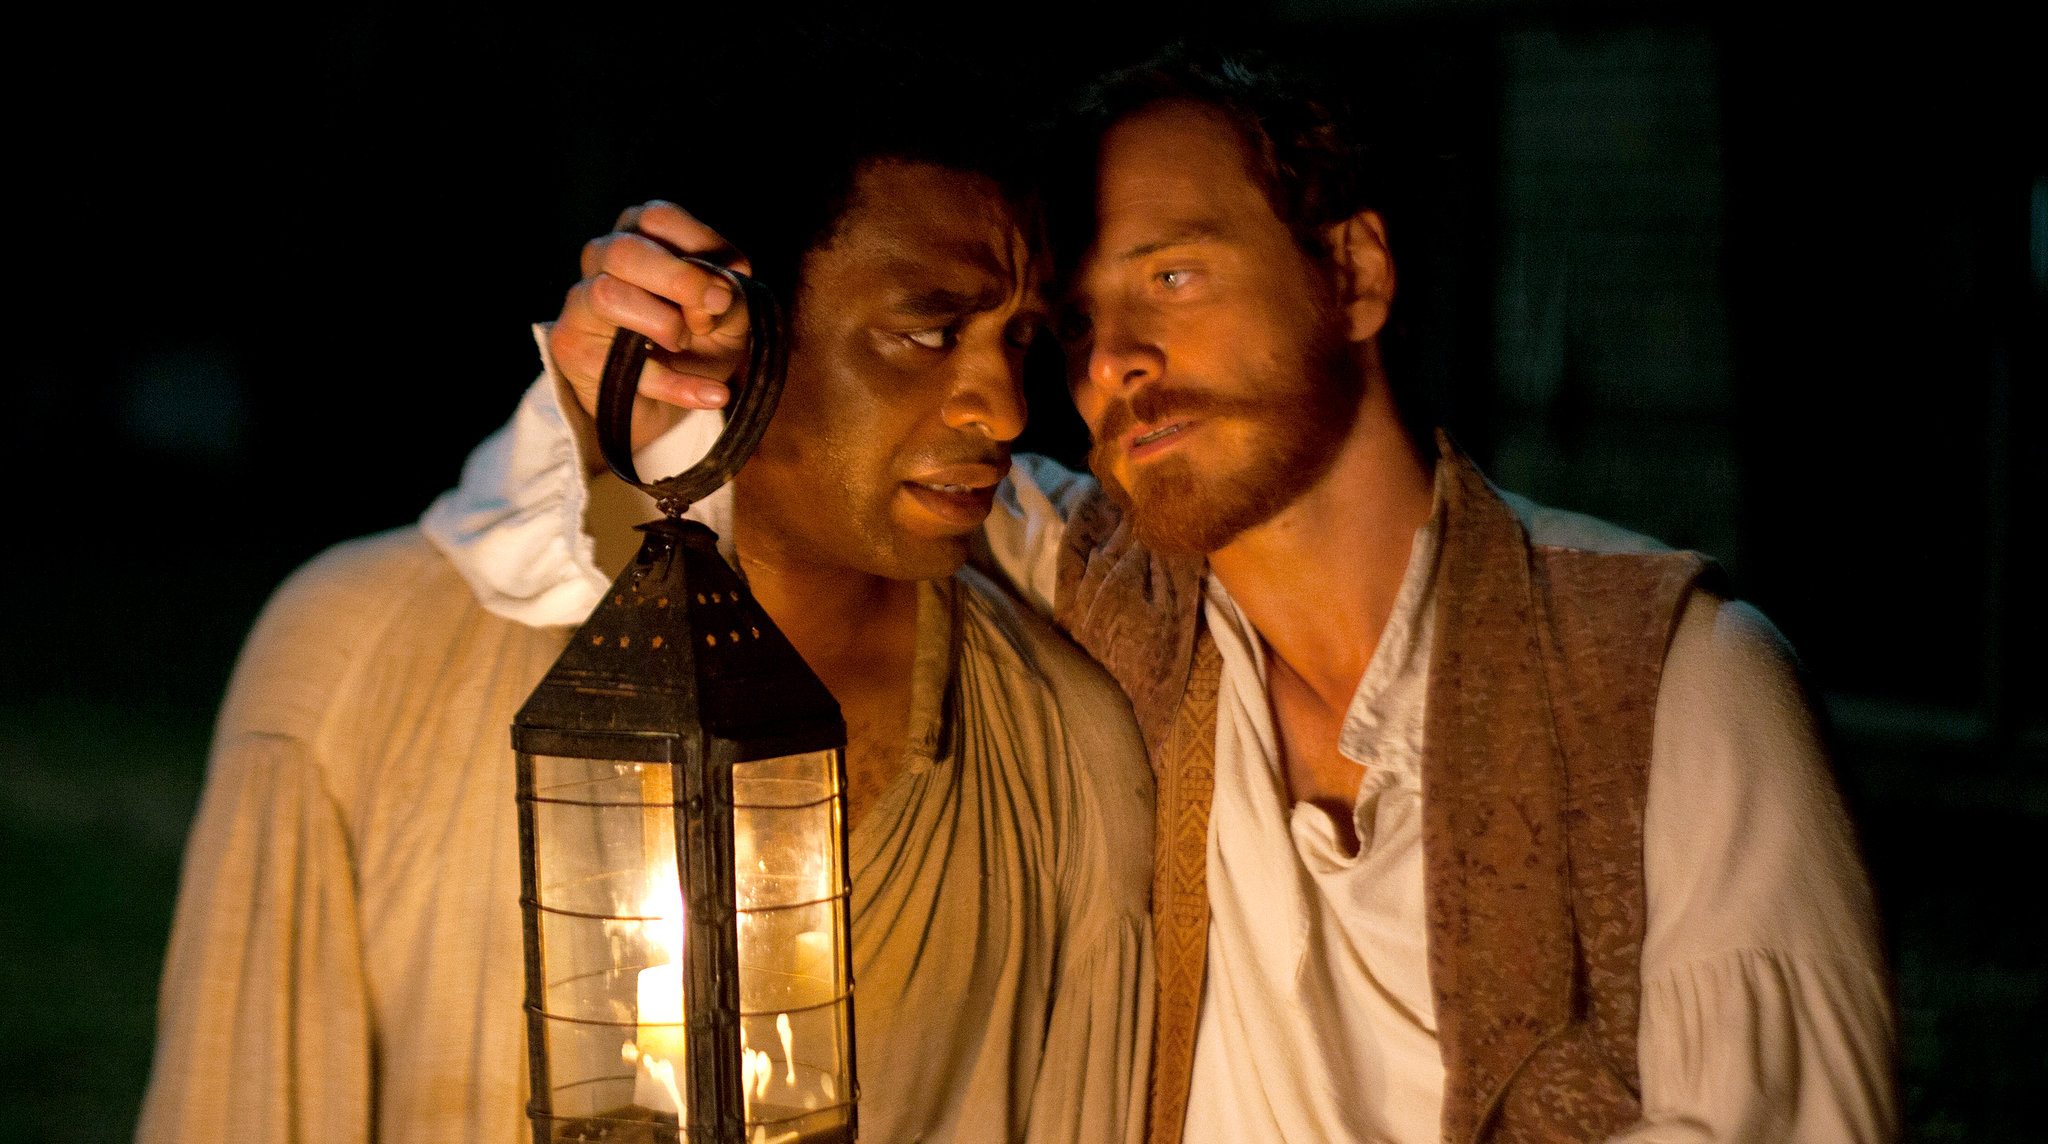 072 12 Years a Slave